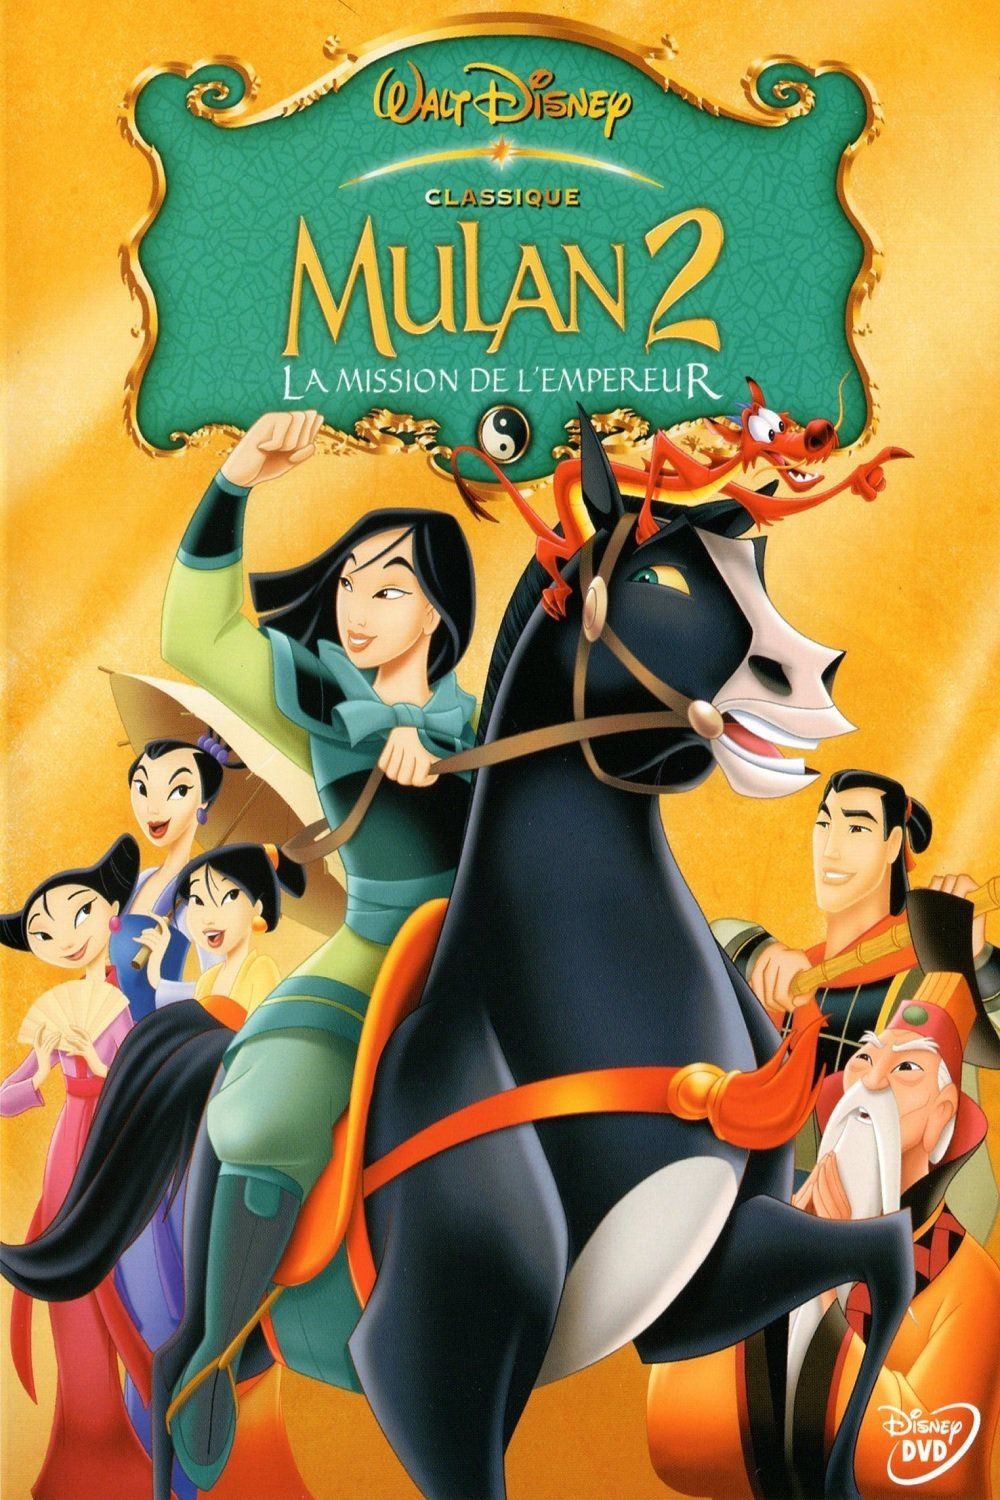 Mulan 2 : la mission de l'empereur. | Critique | Disney-Planet